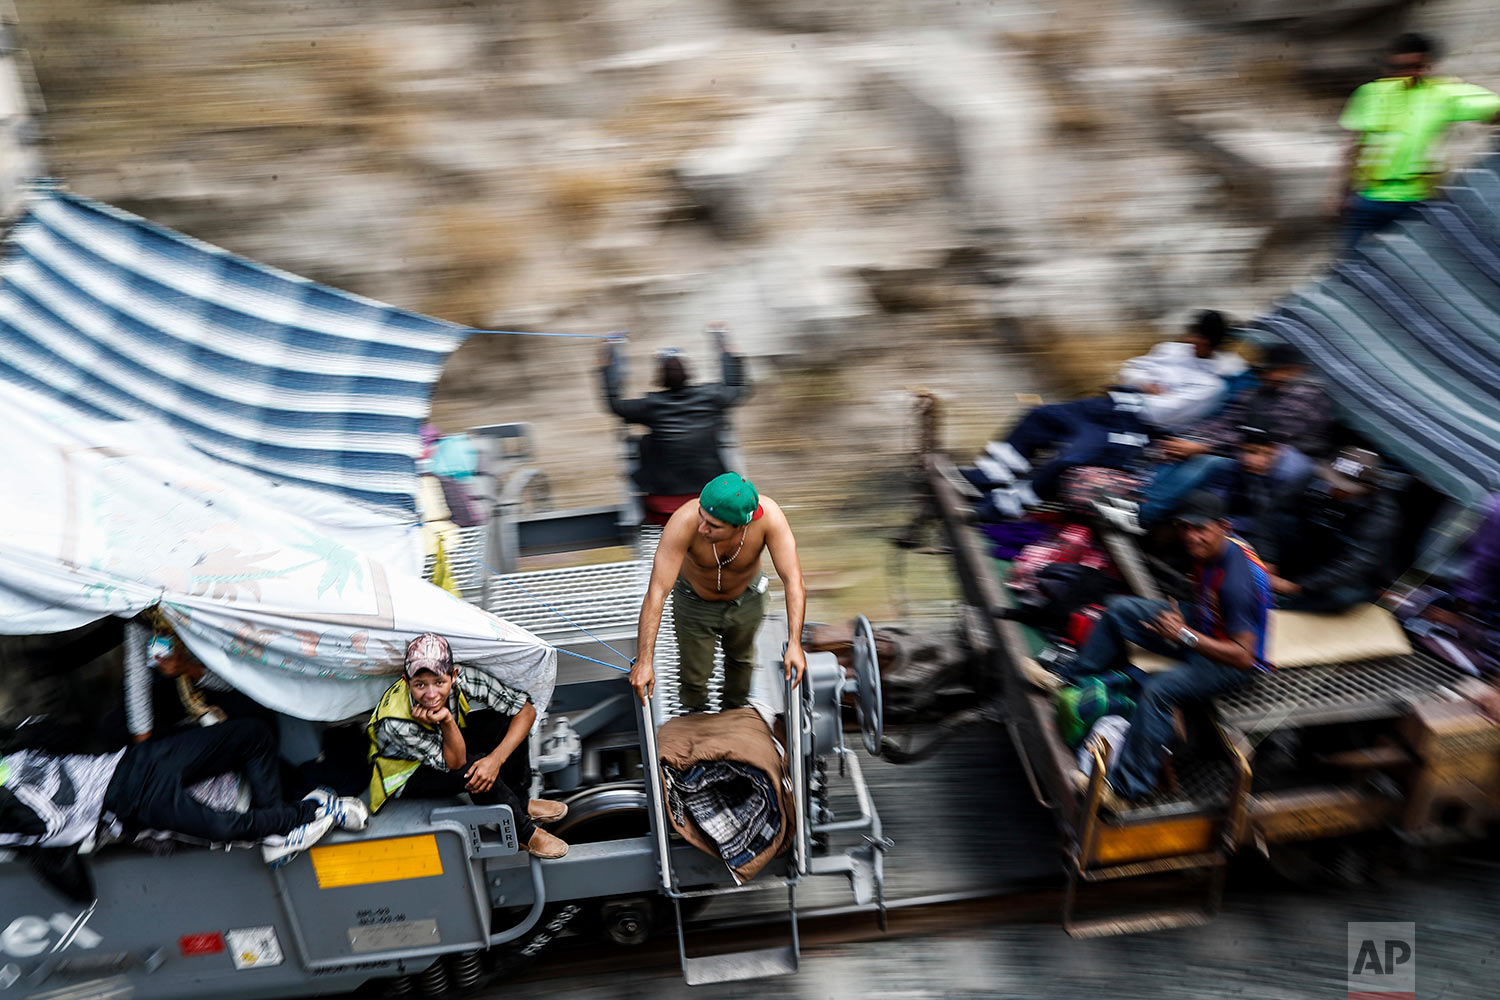 """Central American migrants, who attended the annual Migrants Stations of the Cross caravan for migrants' rights, ride a northern-bound train known as """"La Bestia,"""" or The Beast, as they arrive to Hermosillo, Sonora state, Mexico, Saturday, April 21, 2018. The remnants of the migrant caravan that drew the ire of President Donald Trump were continuing their journey north through Mexico toward the U.S. border. (AP Photo/Luis Gutierrez)"""